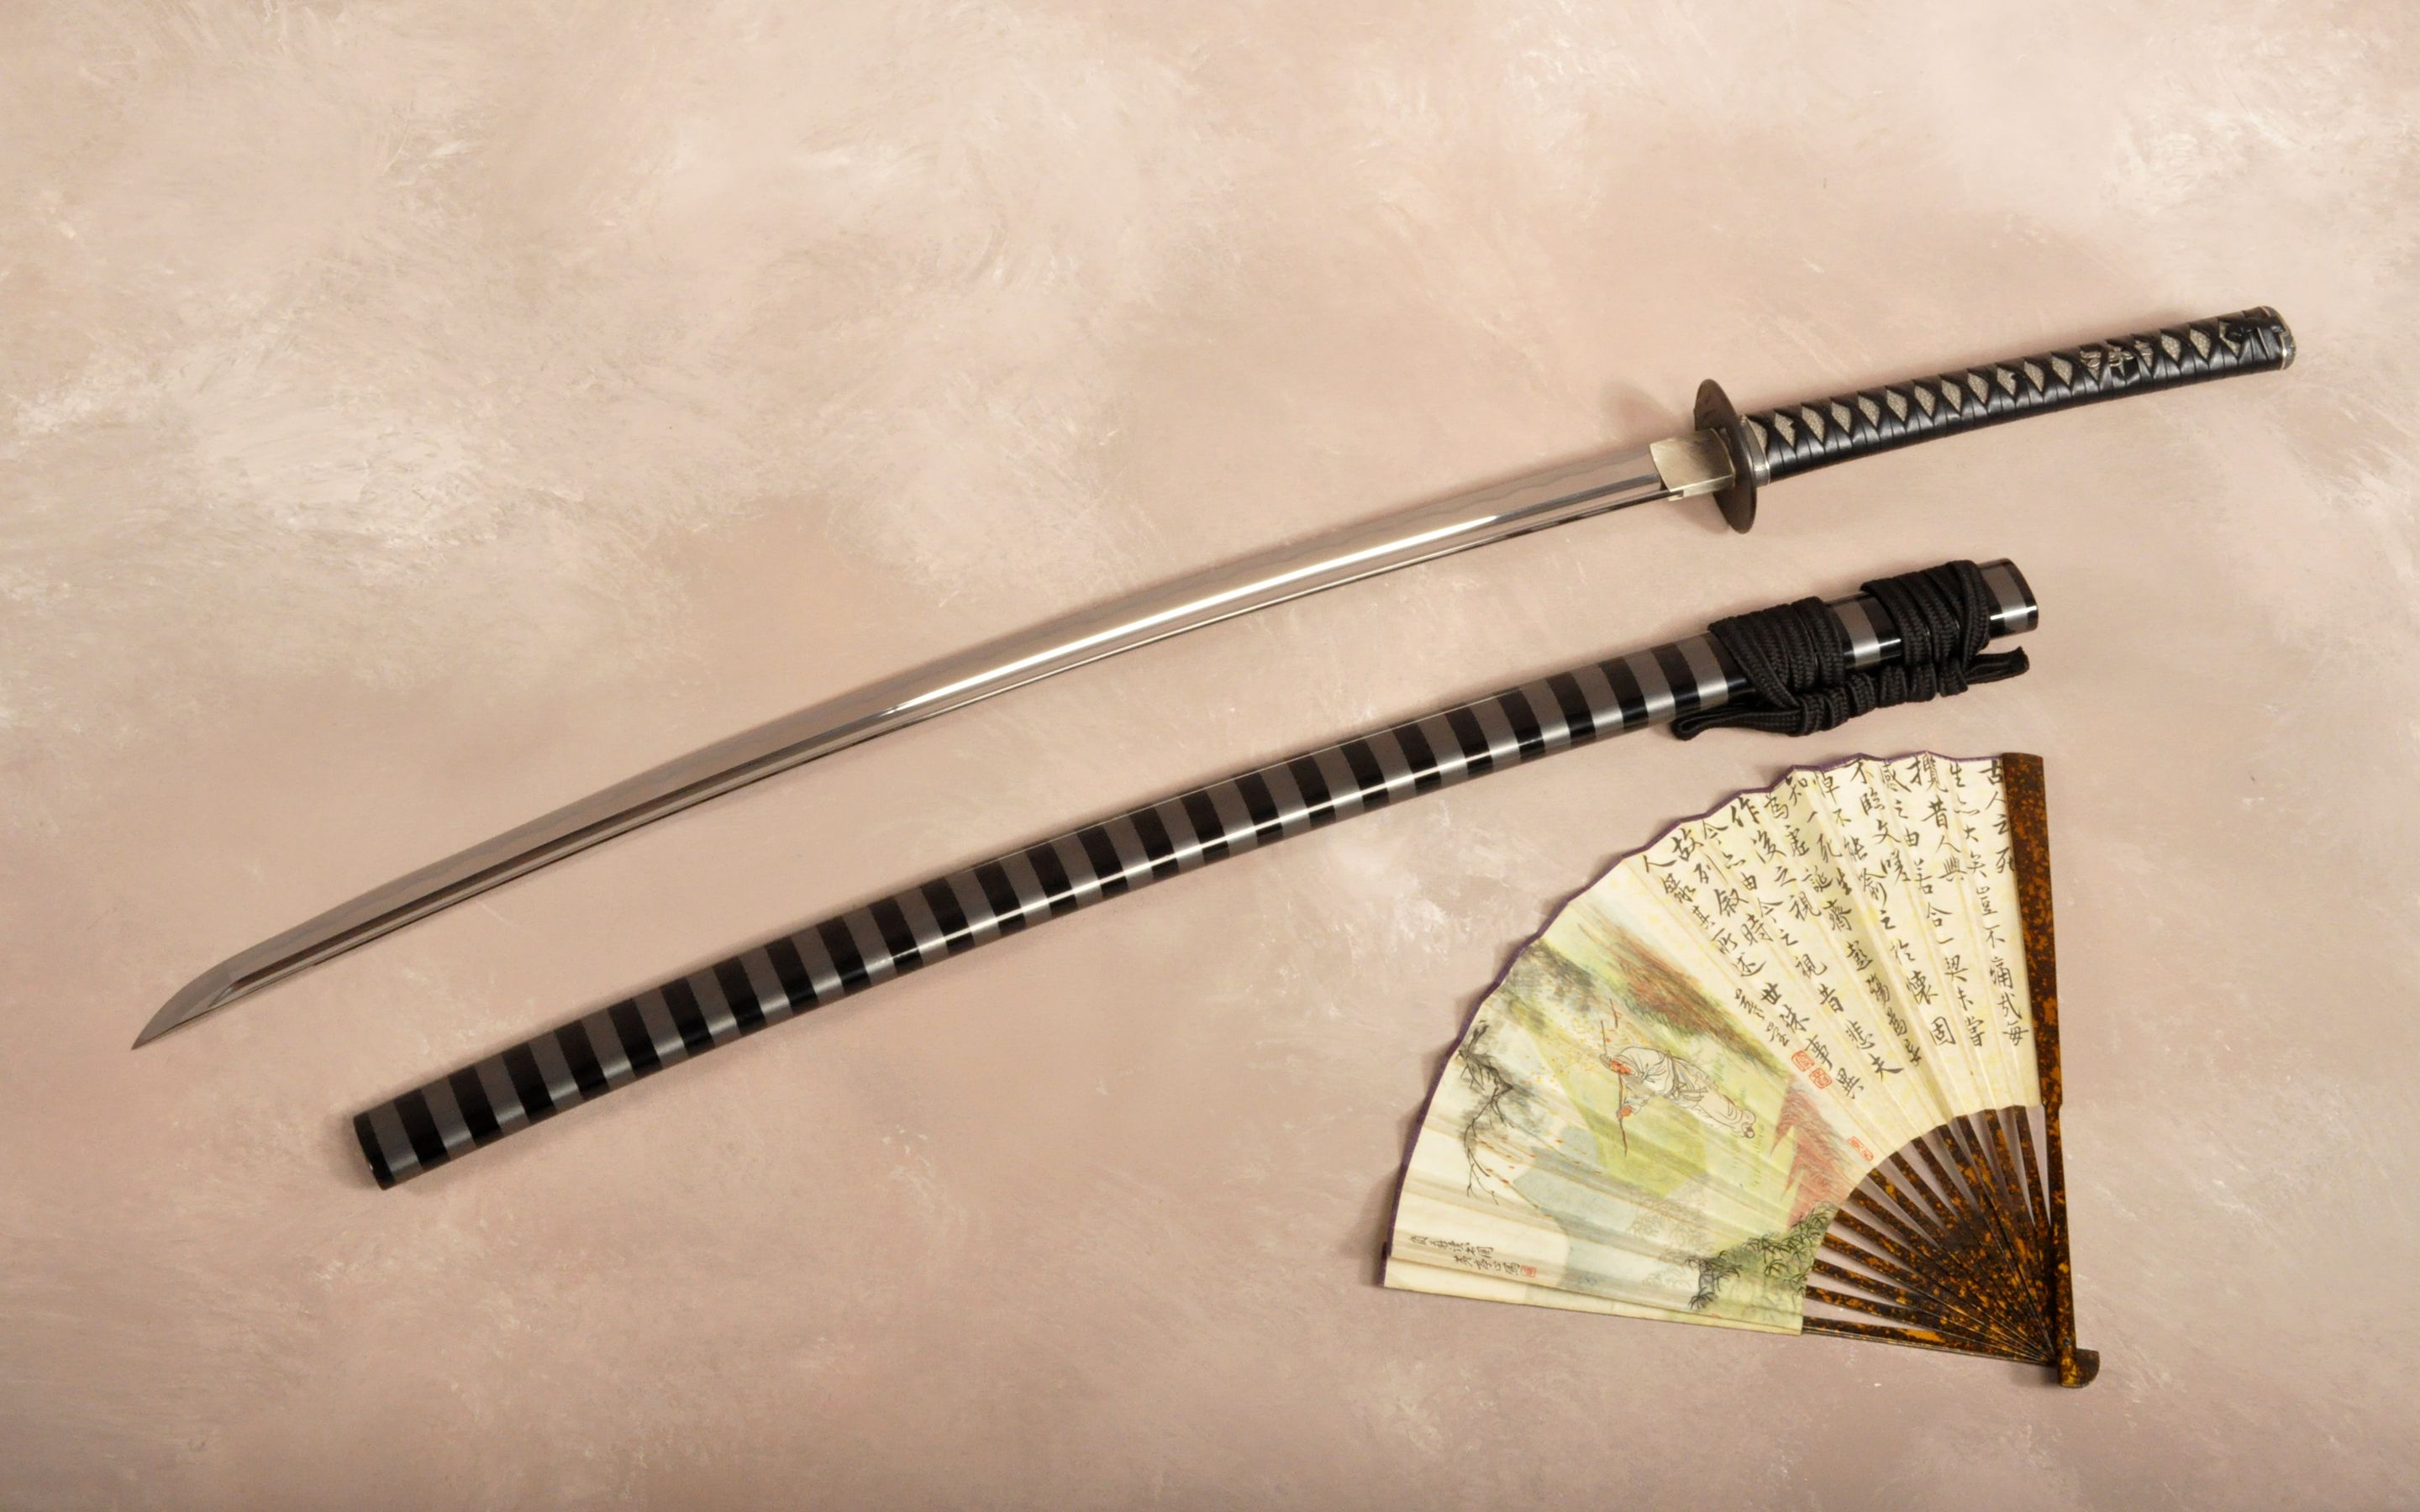 Samurai Sword Hd Wallpaper Samurai Sword Hd Wallpapers Katana